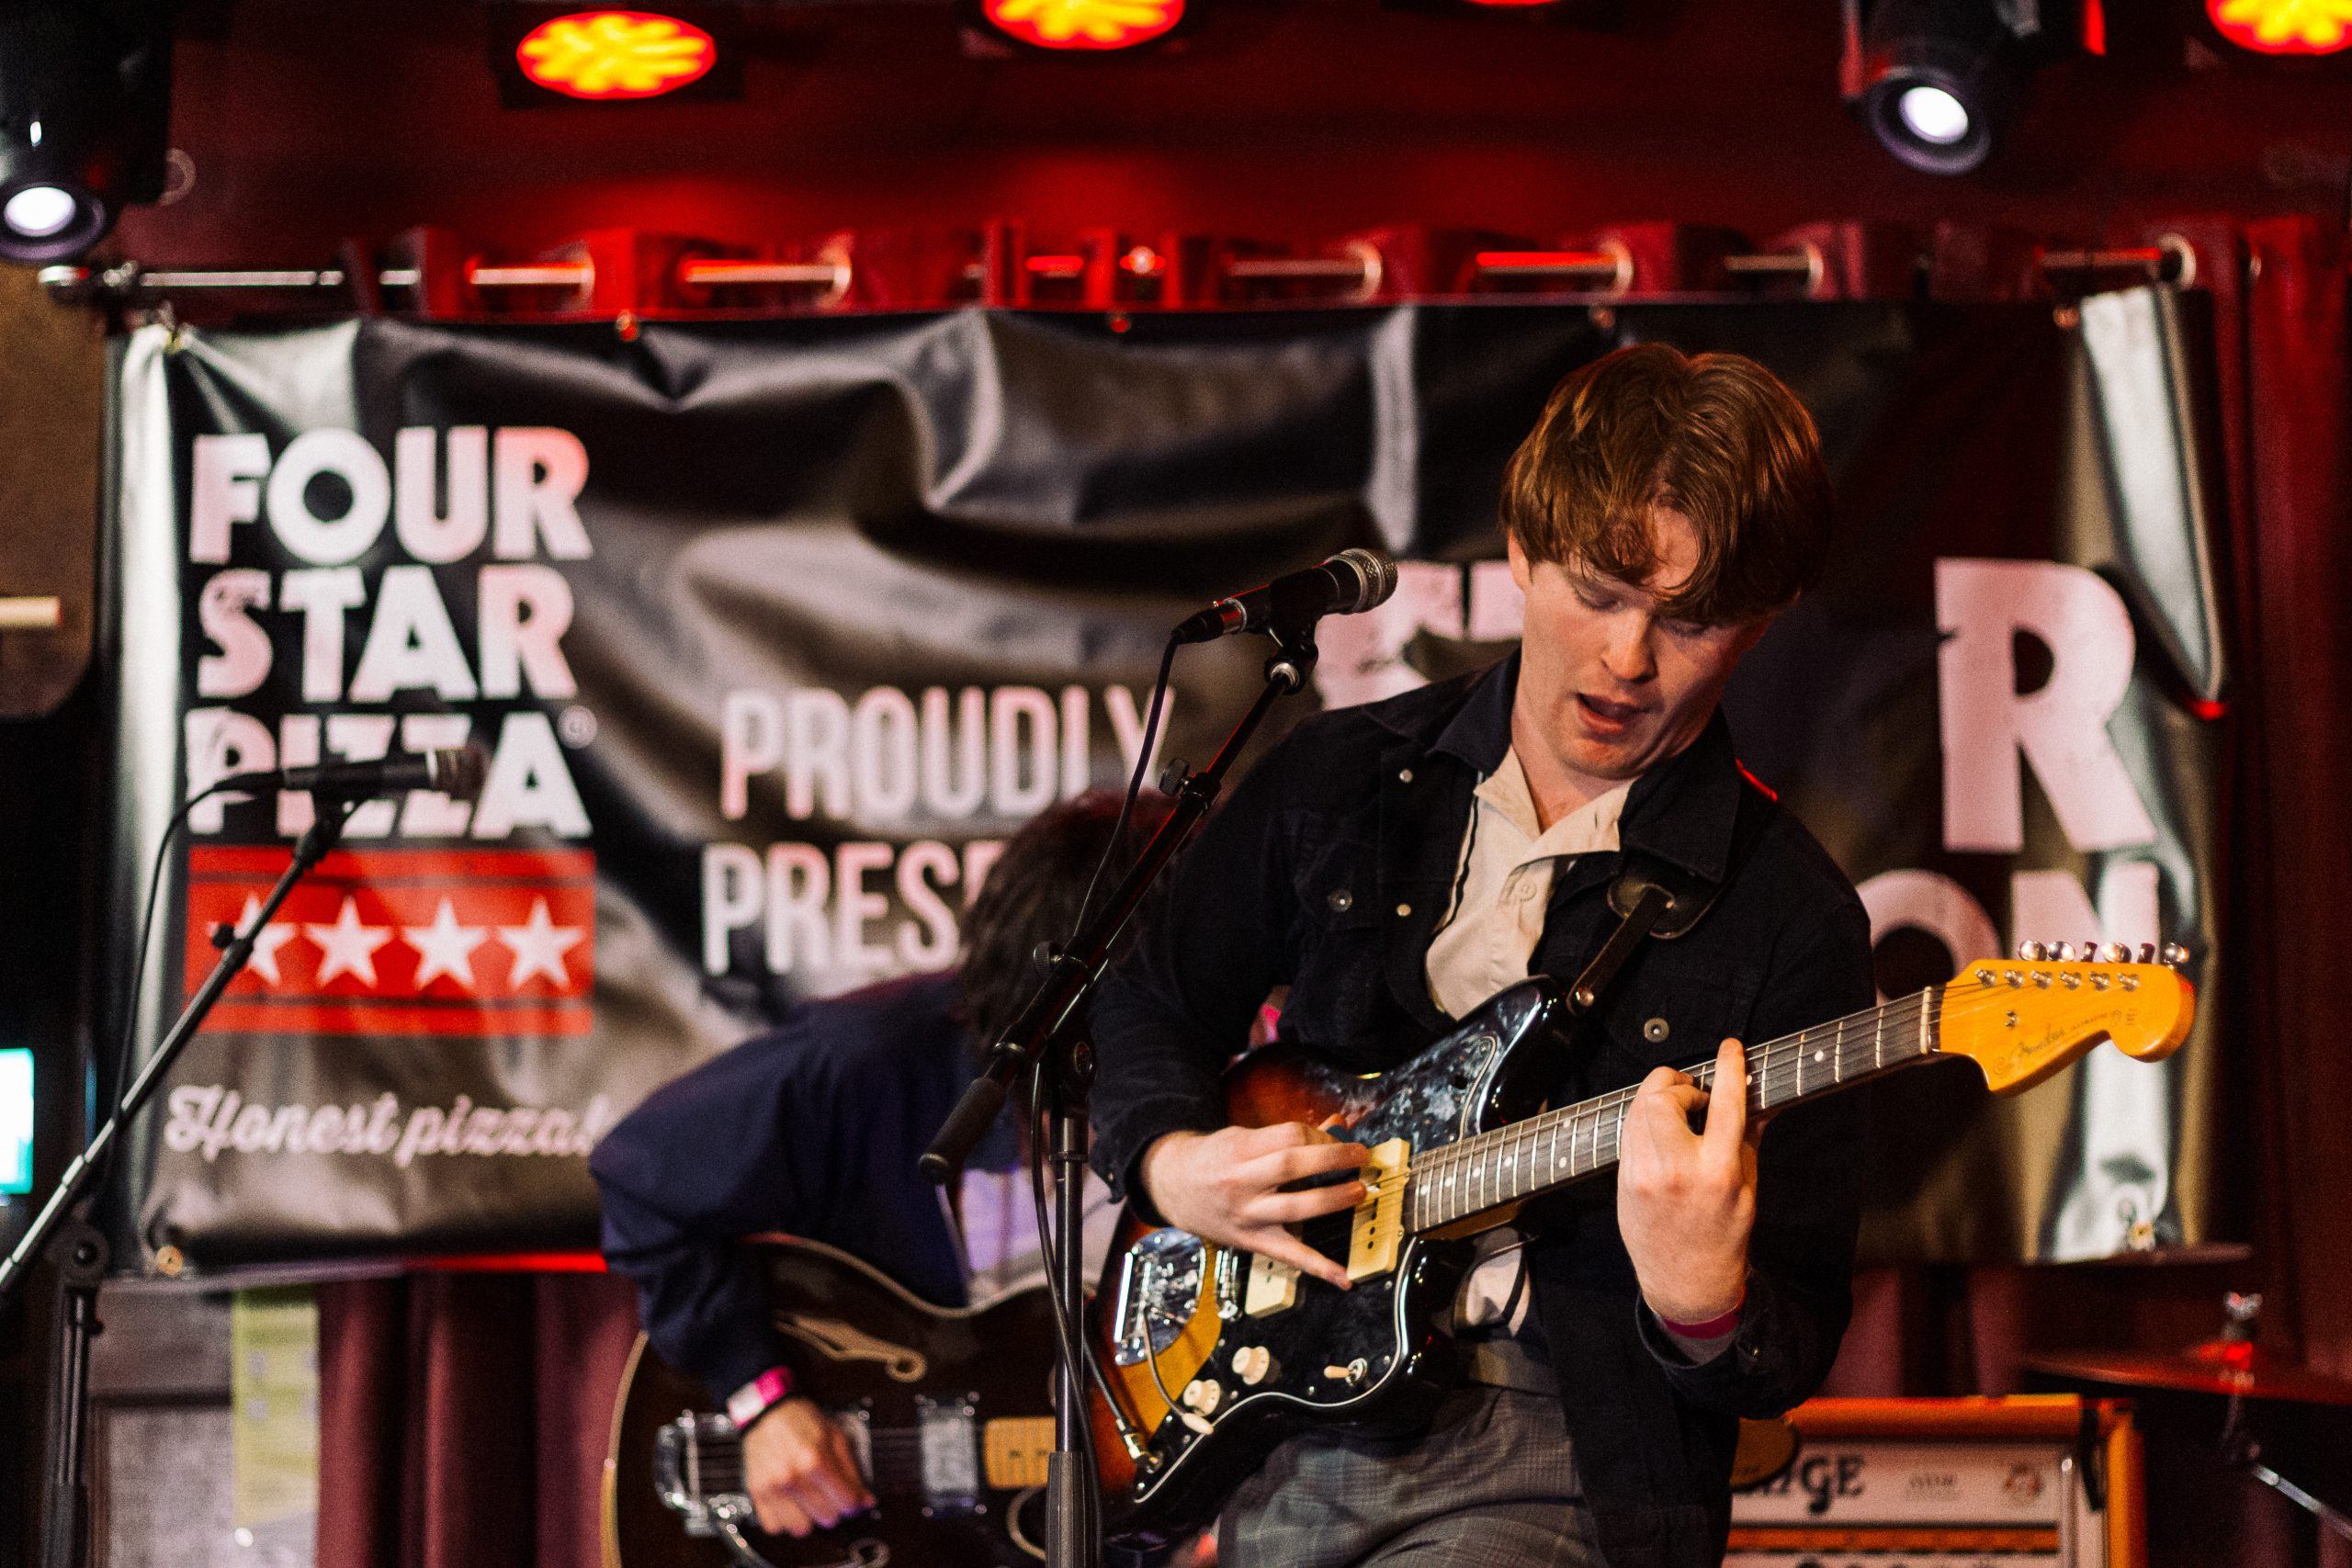 Connacht representatives Classic Yellow from County Galway perform in the Grand Final of Star Nation 2020 at the Roisin Dubh in Galway. The all-Ireland music competition organised by Four Star Pizza was won by Rachel Grace, a young singer songwriter from County Wexford.